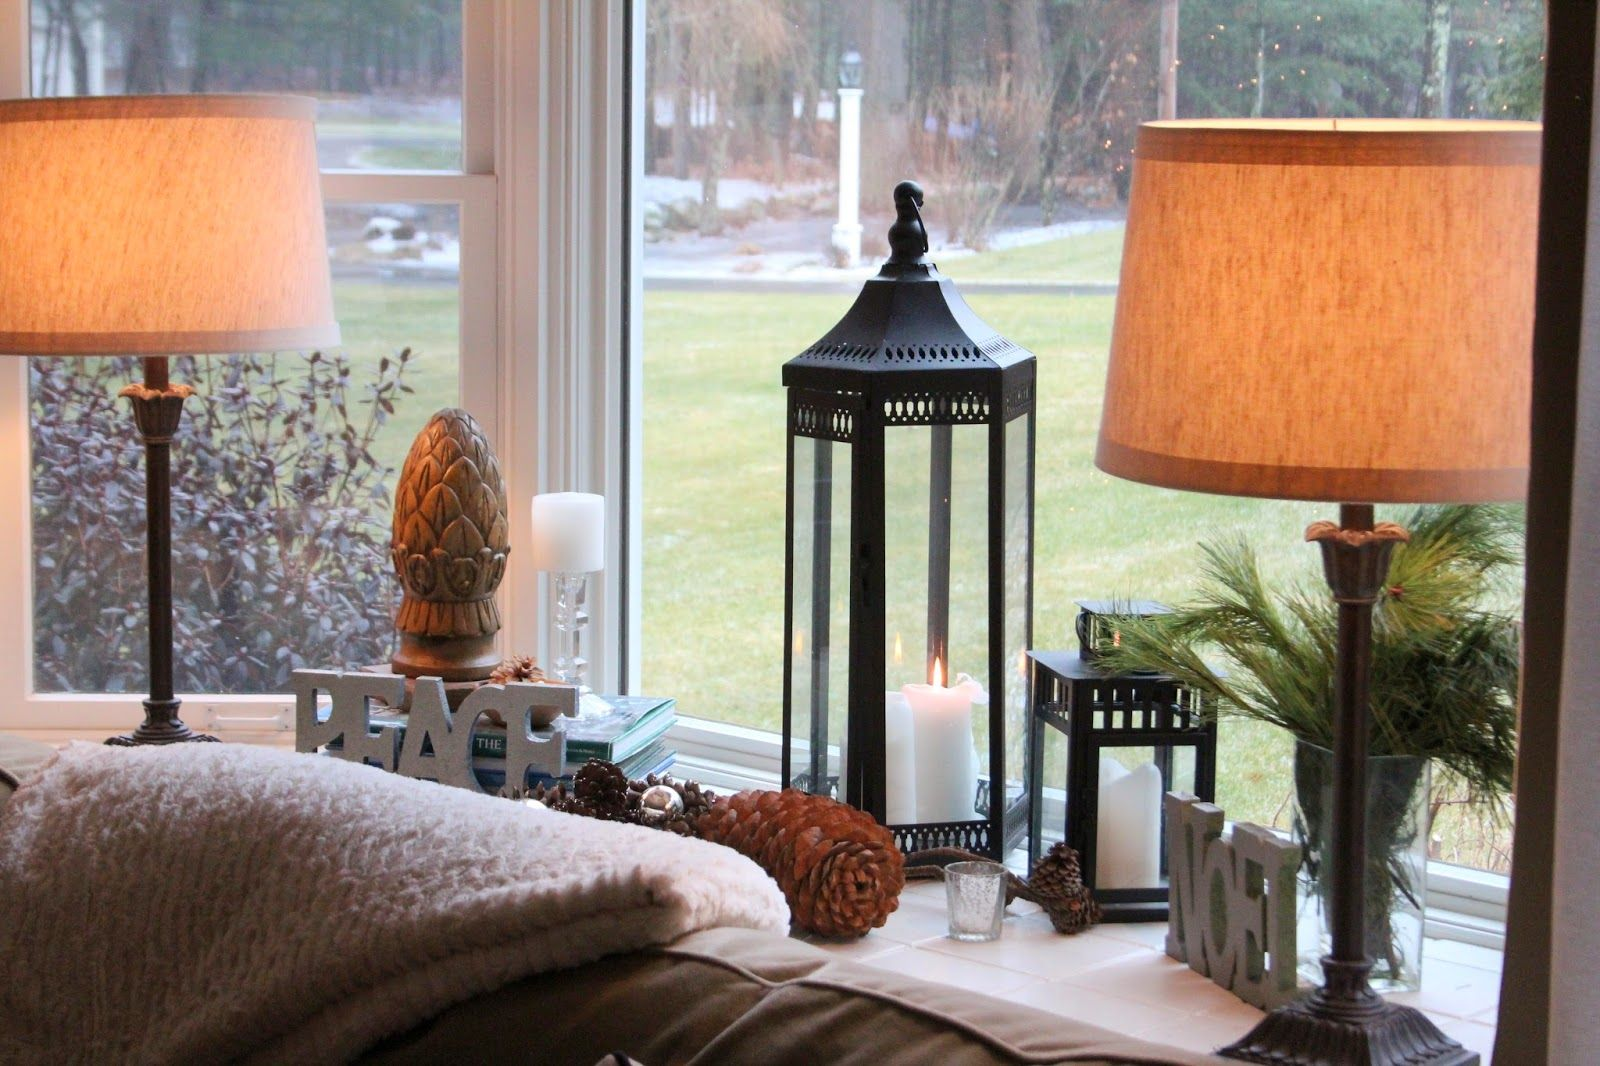 Living Room Window Sill Decorating Ideas Sets With Tables Styling Bay Sills Decor Geam Pinterest Shine Your Light